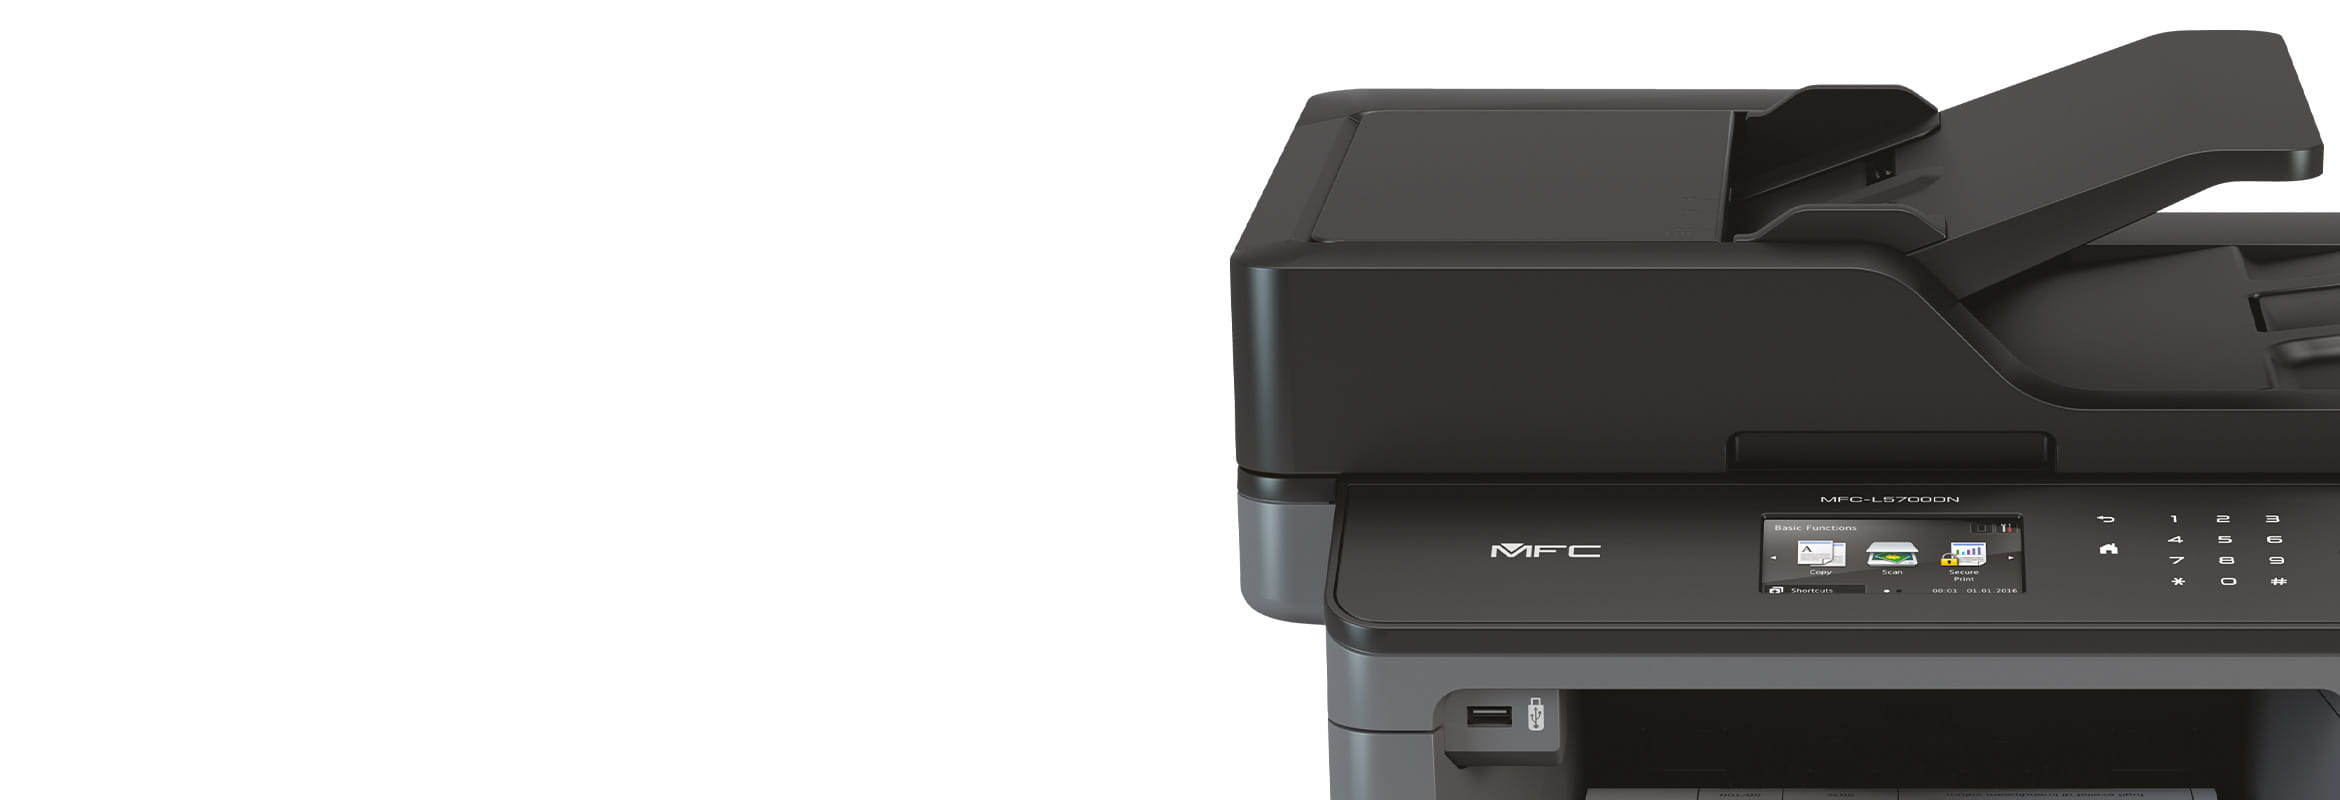 Brother printer closeup